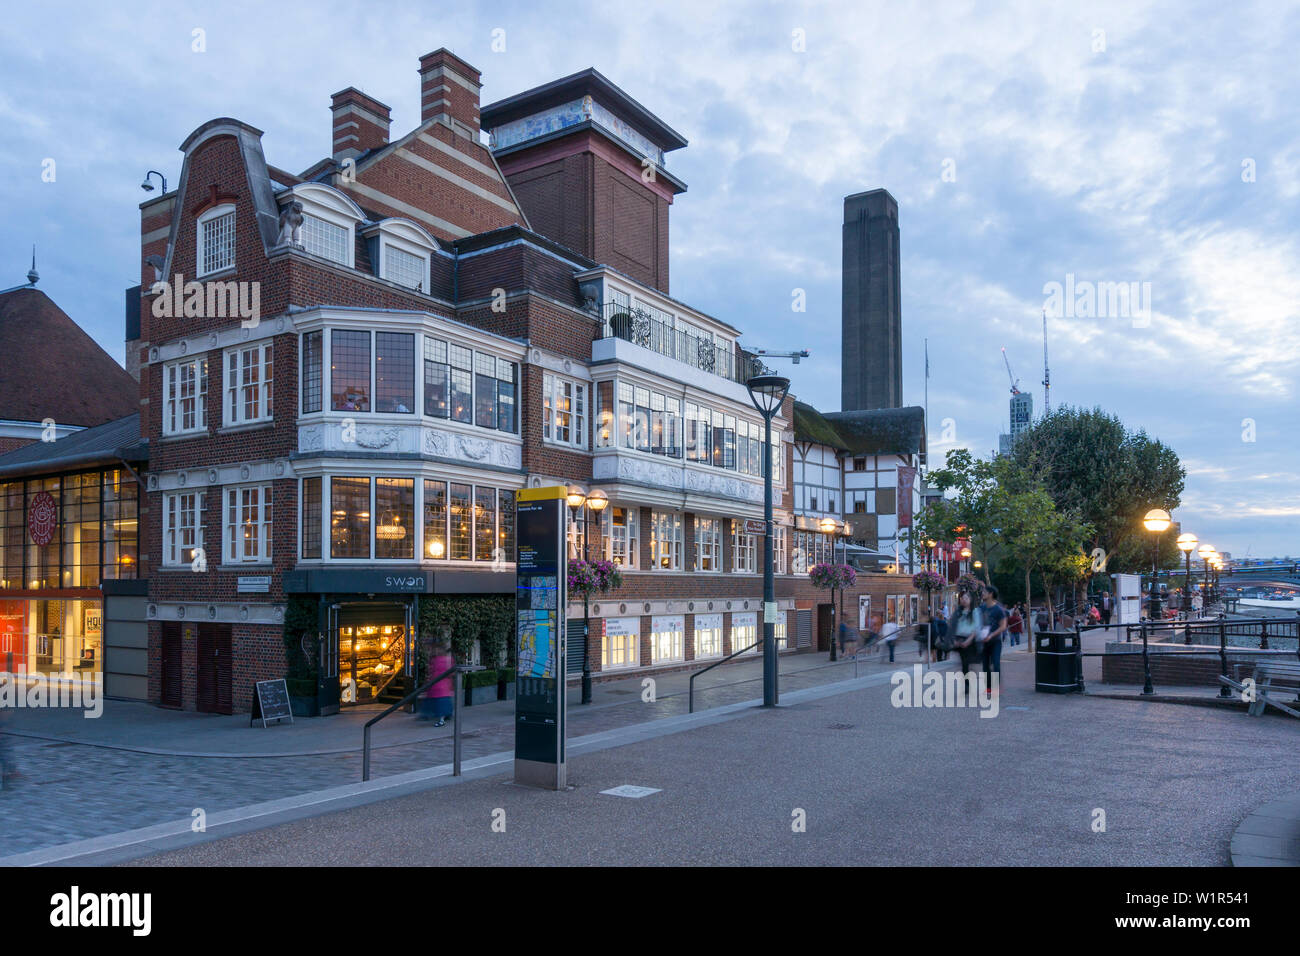 Swan Pub near Tate Gallery, Riverside Thames, London, UK - Stock Image